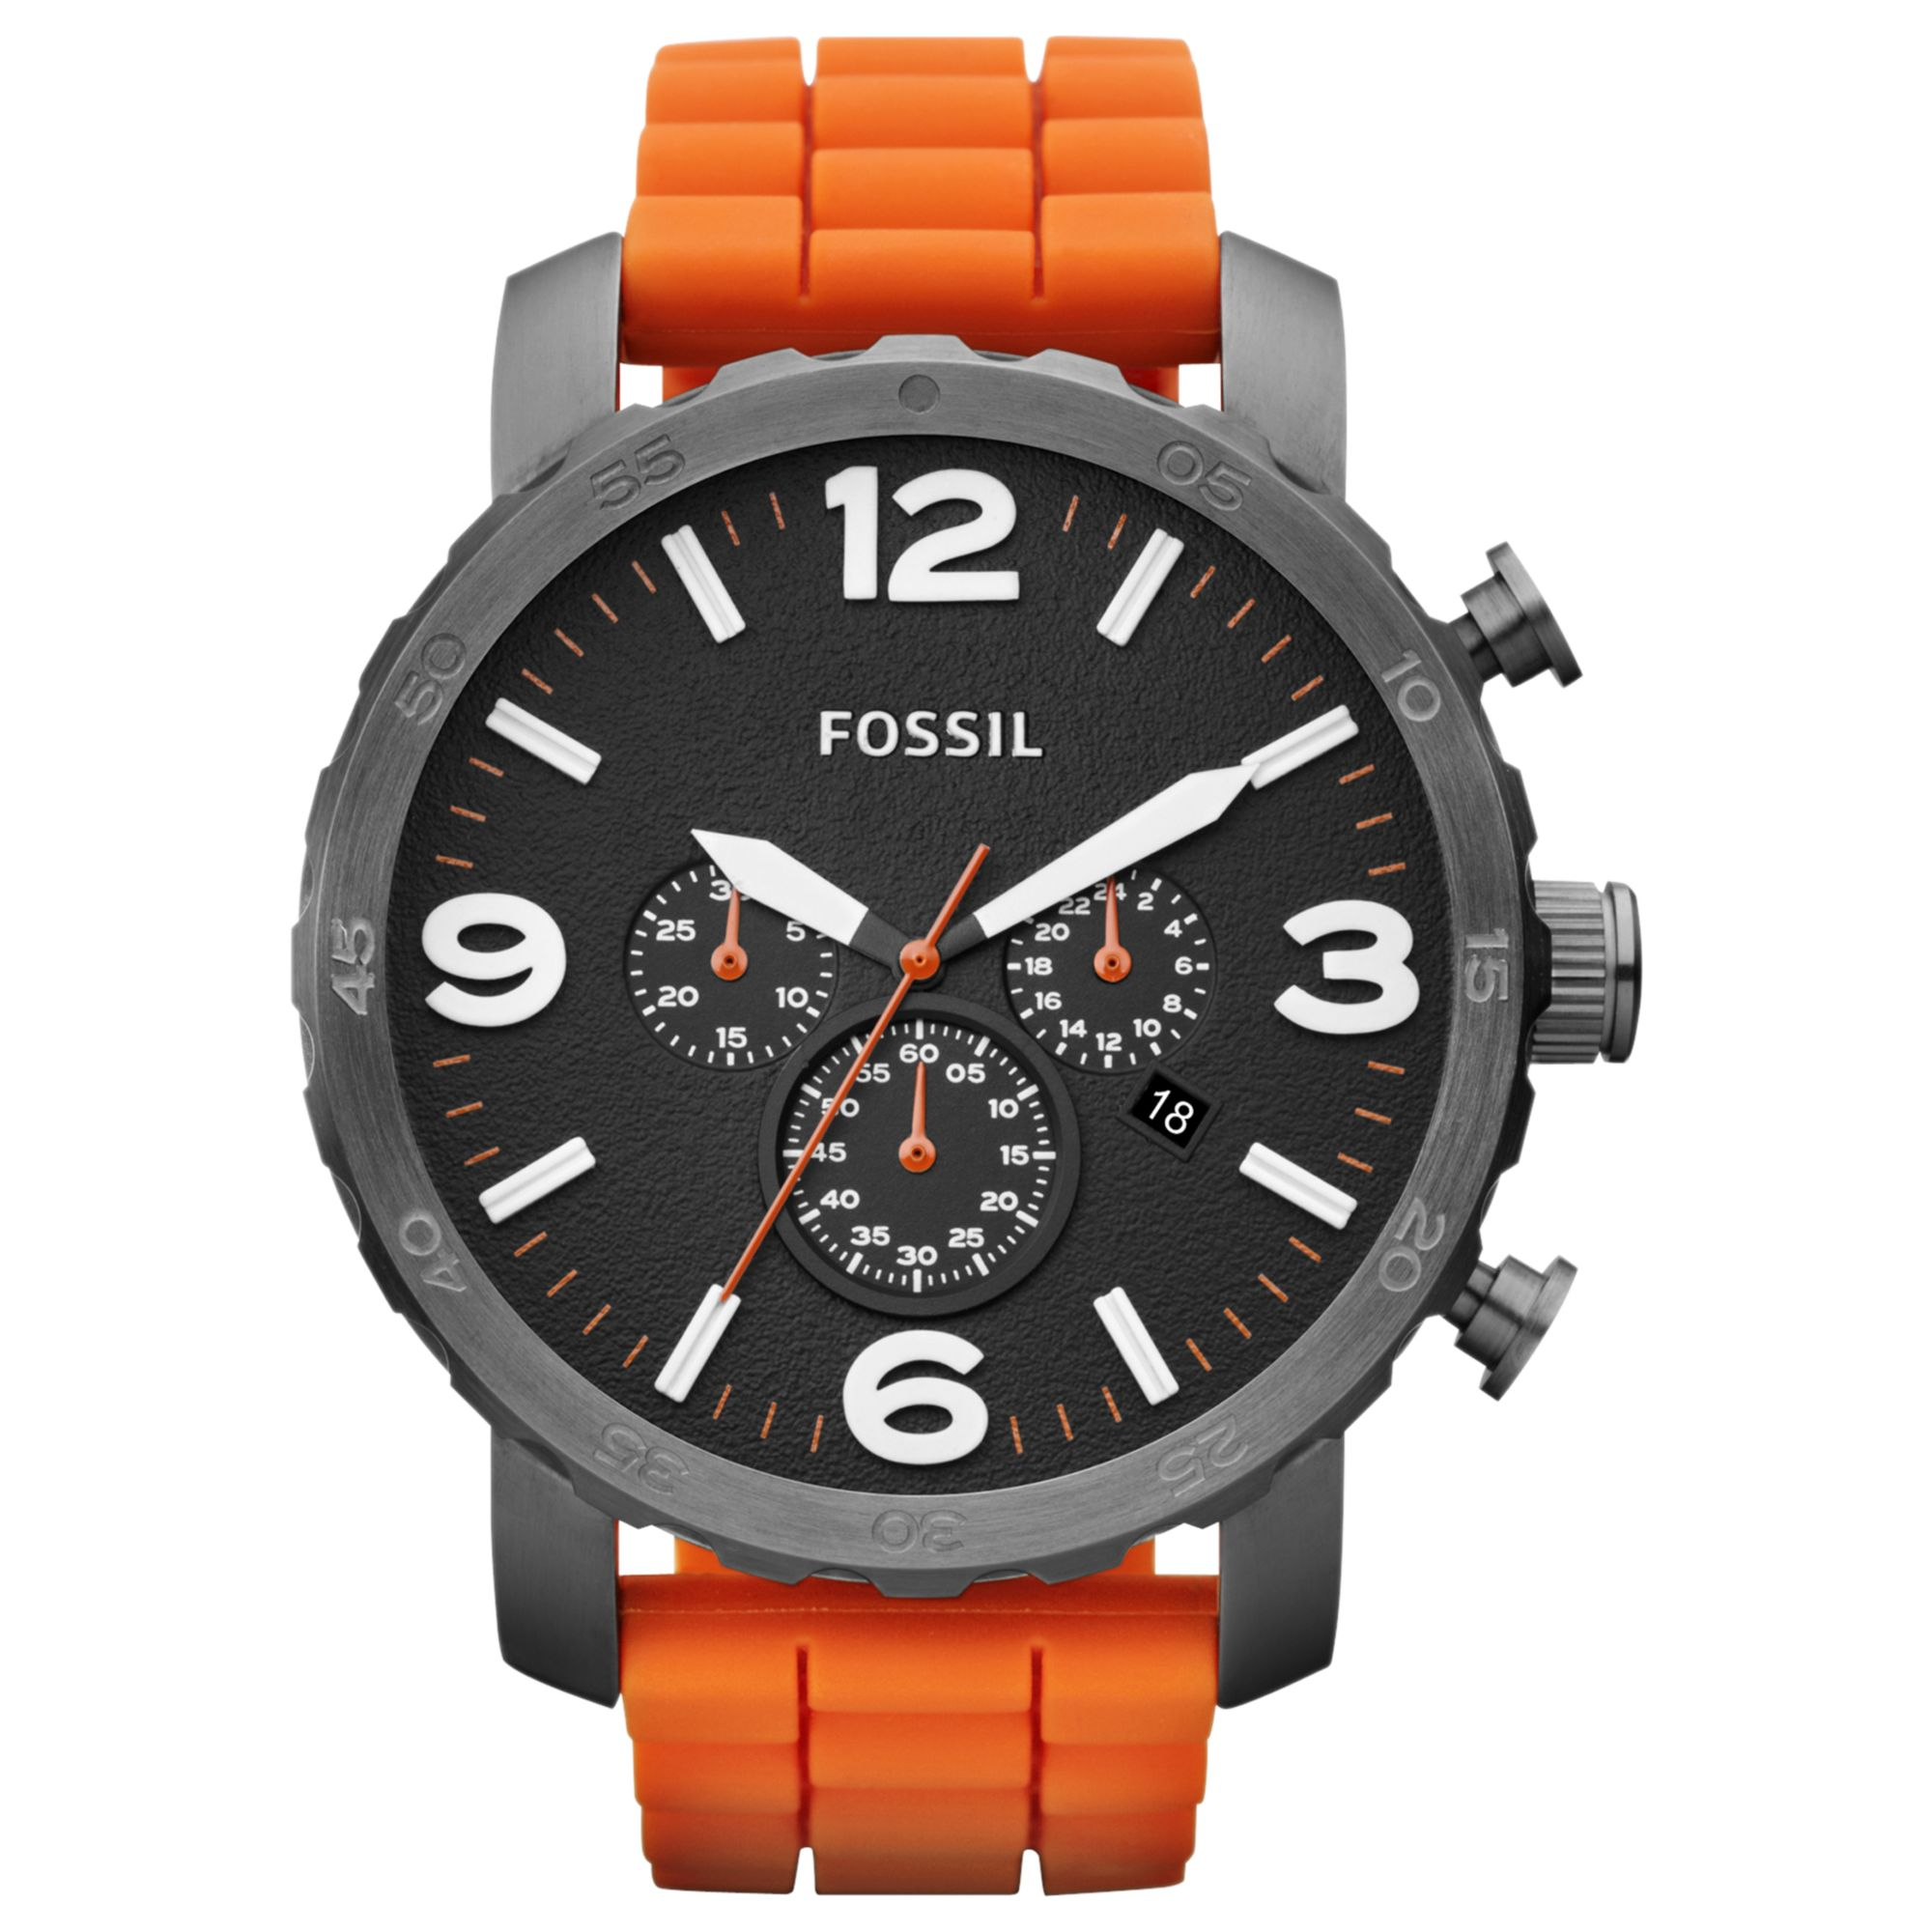 fossil mens chronograph nate orange silicone strap watch 50mm gallery